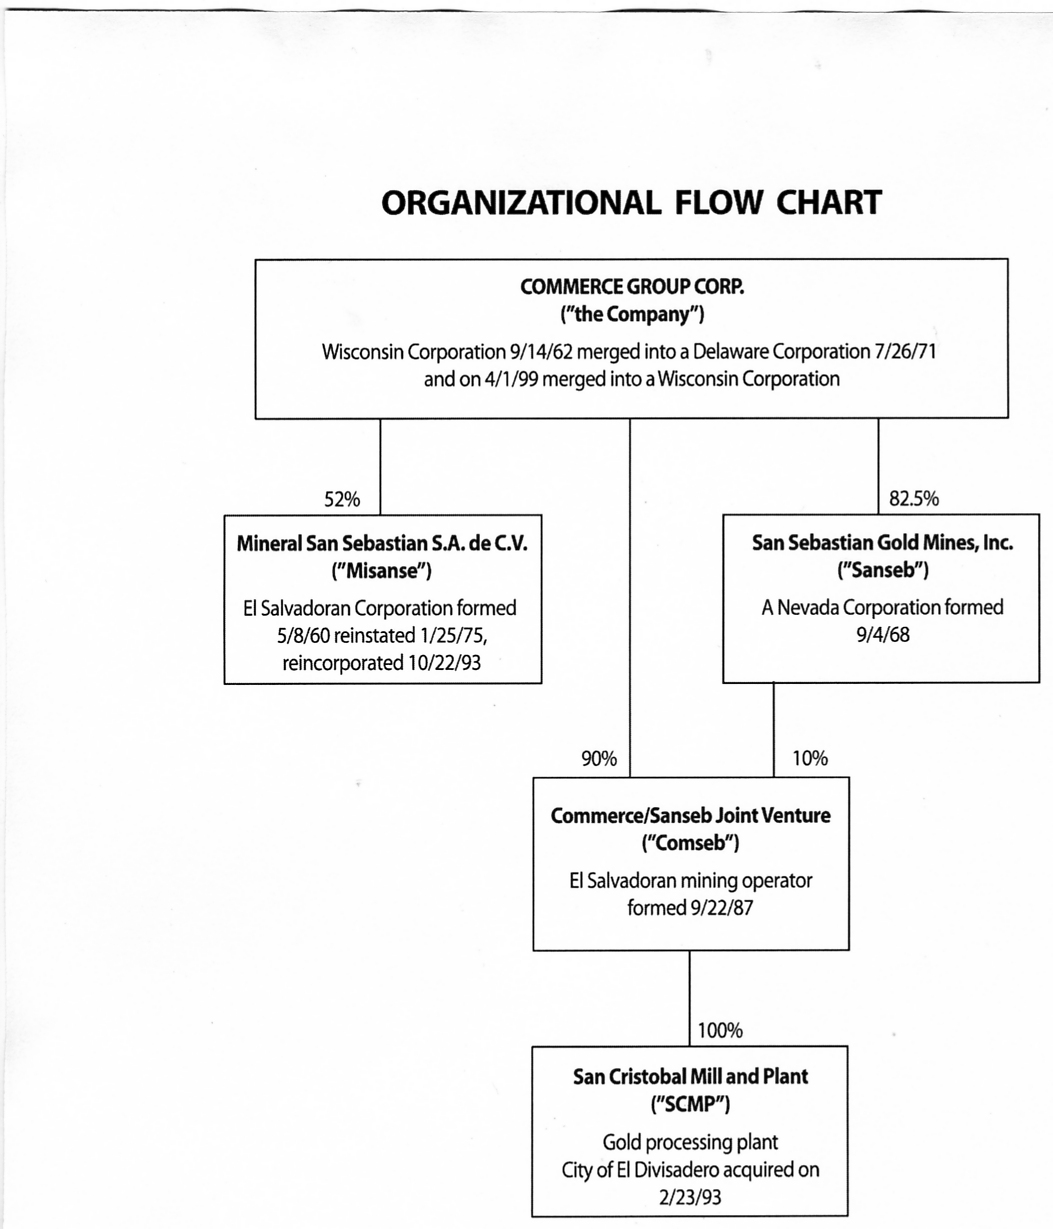 The organizational chart on